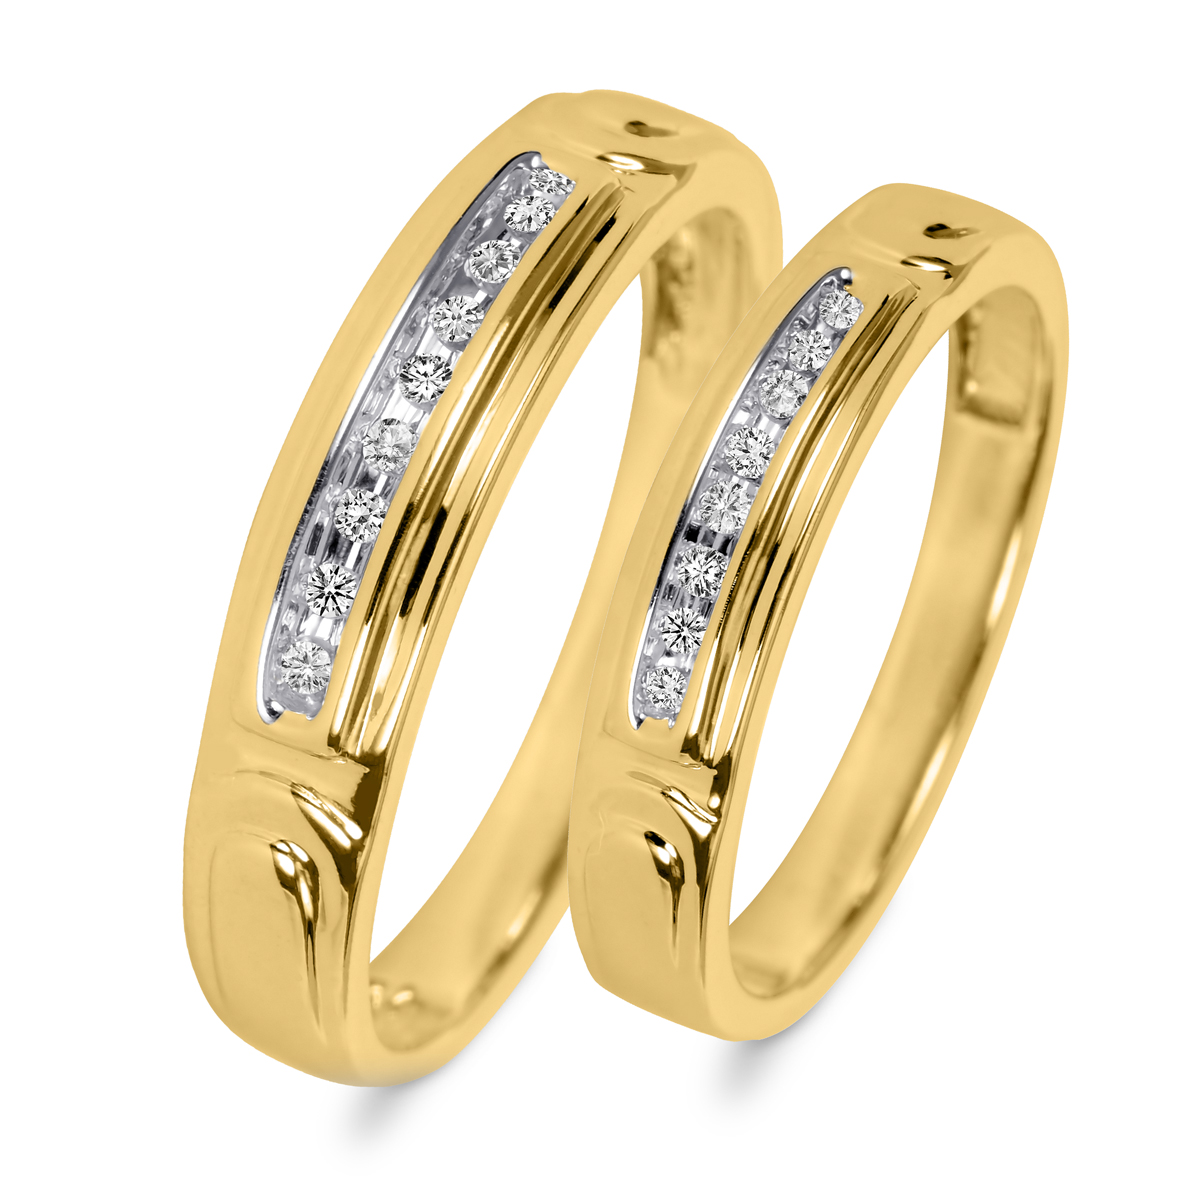 1/10 CT. T.W. Round Cut Diamond His And Hers Wedding Rings 14K Yellow Gold- Size